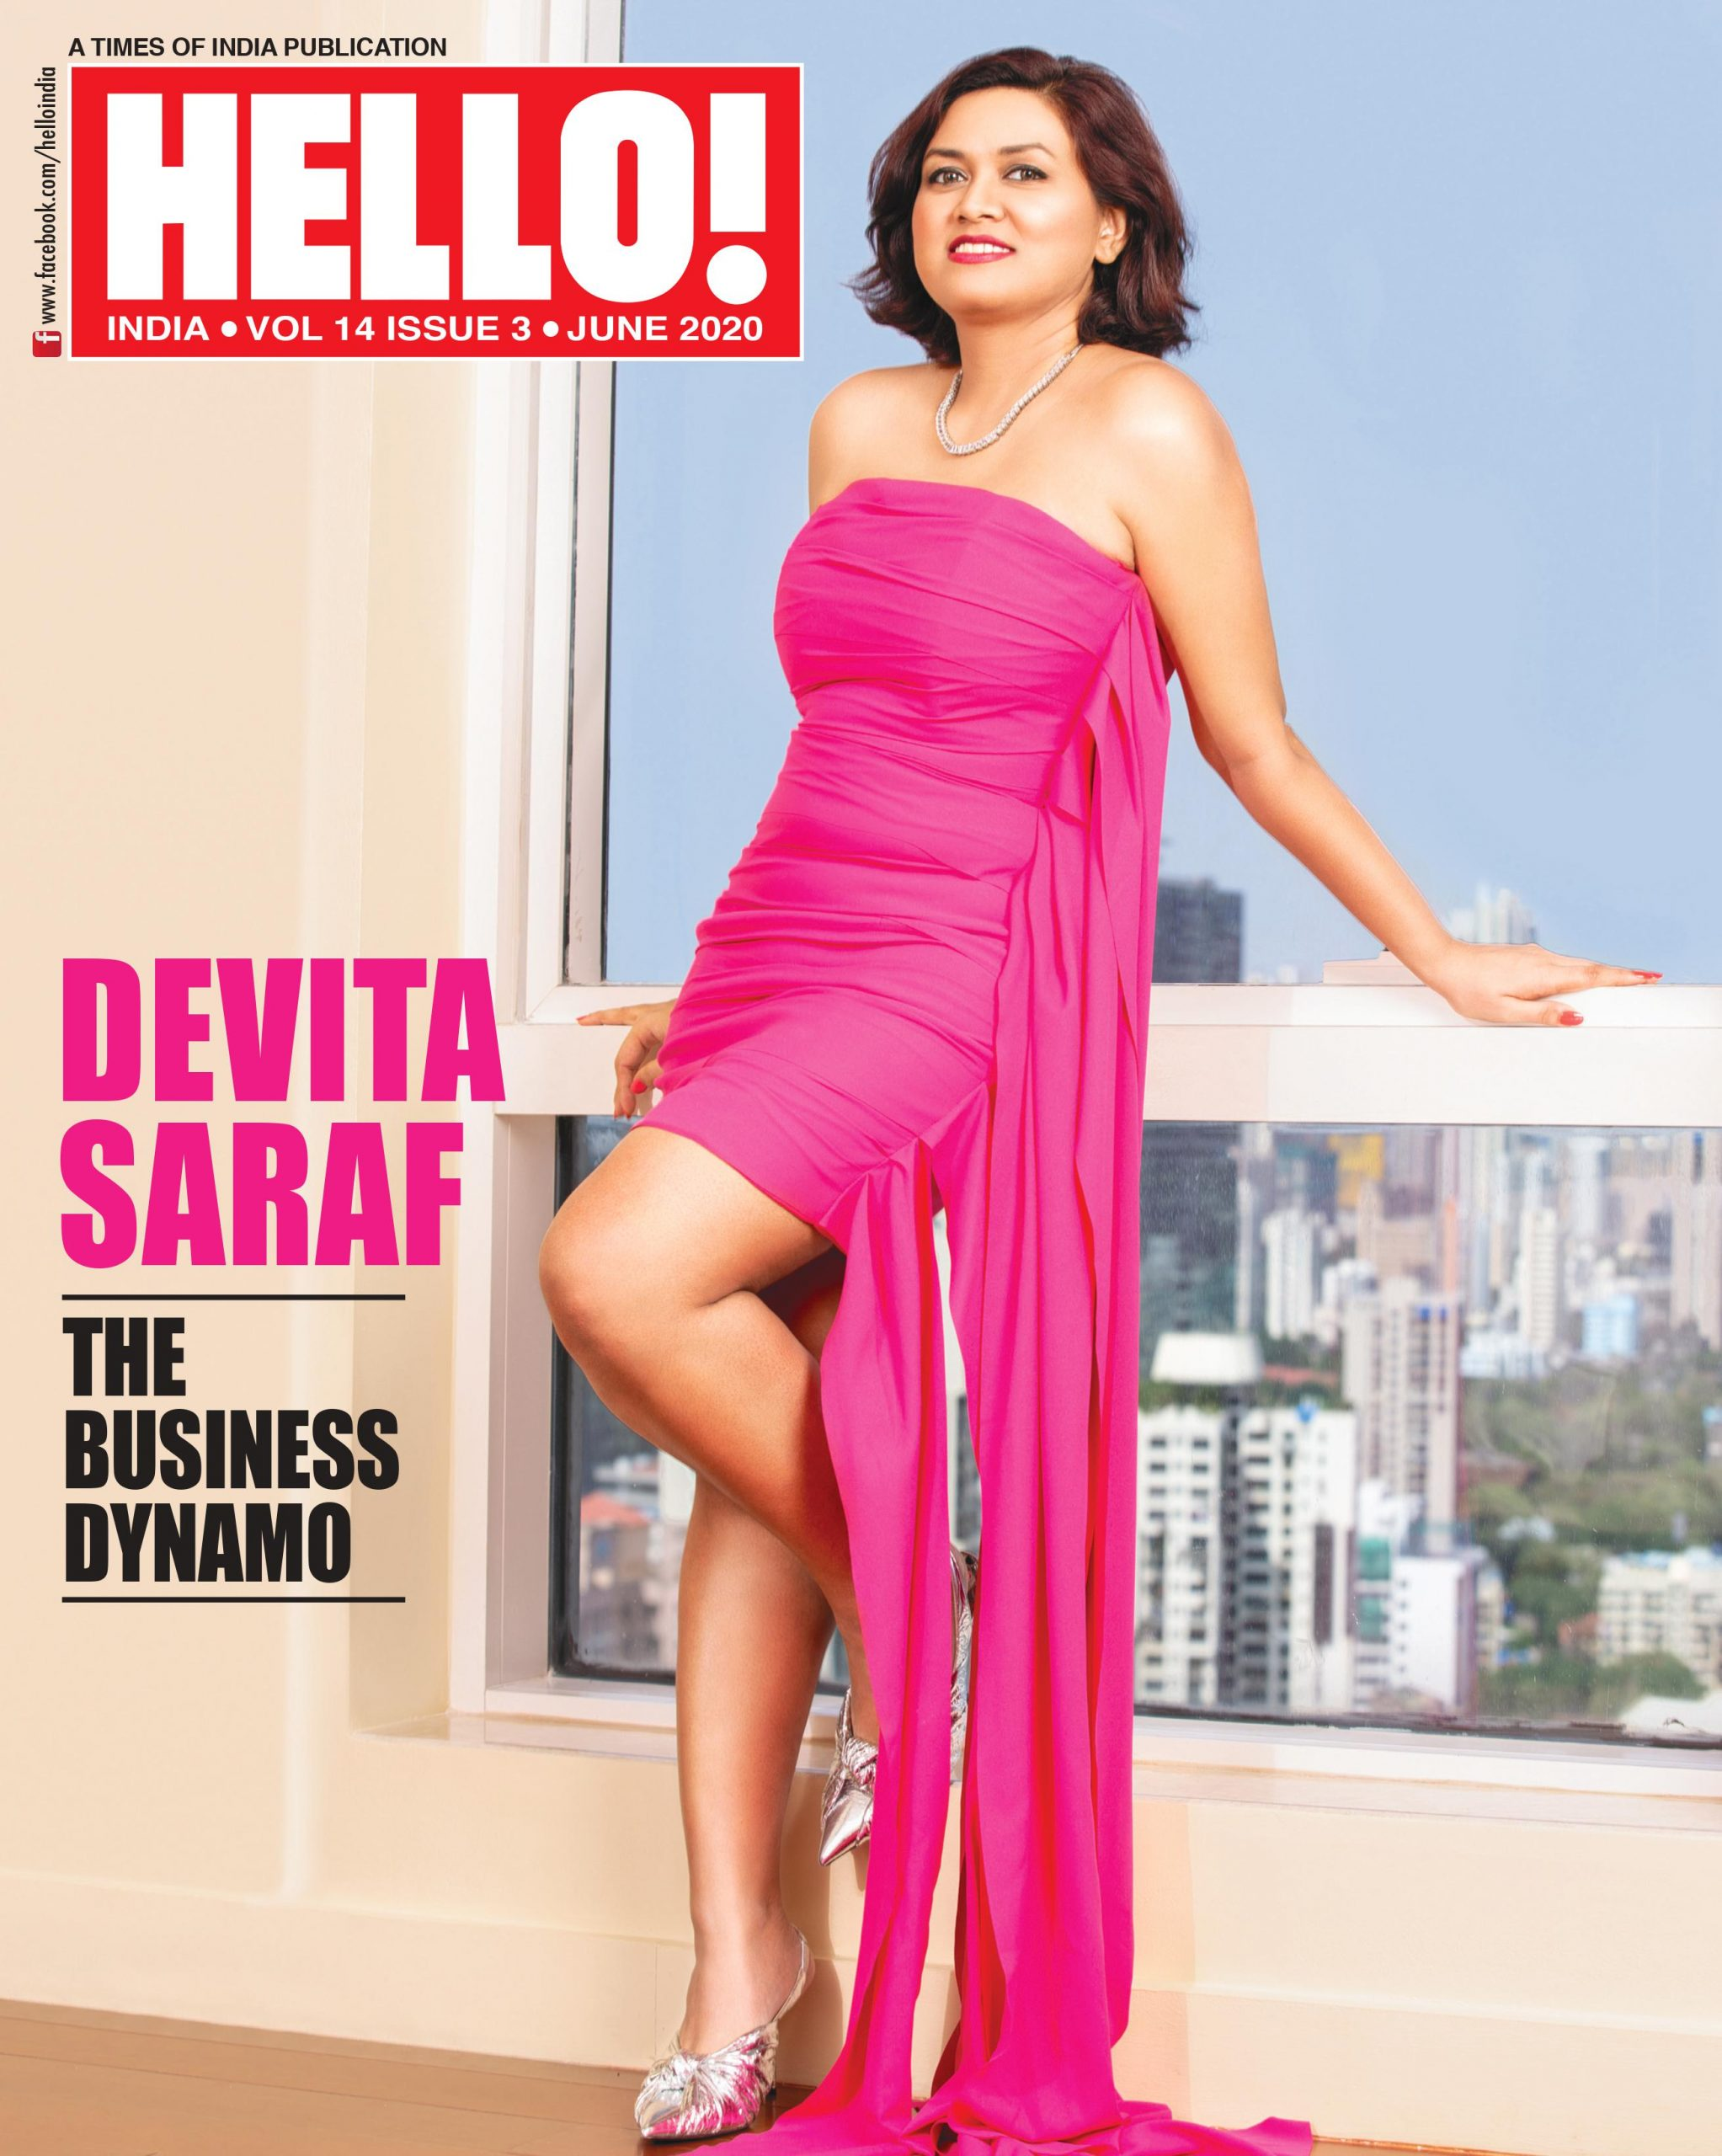 Devita Saraf is the cover girl for 'HELLO' Magazine June 2020 Issue